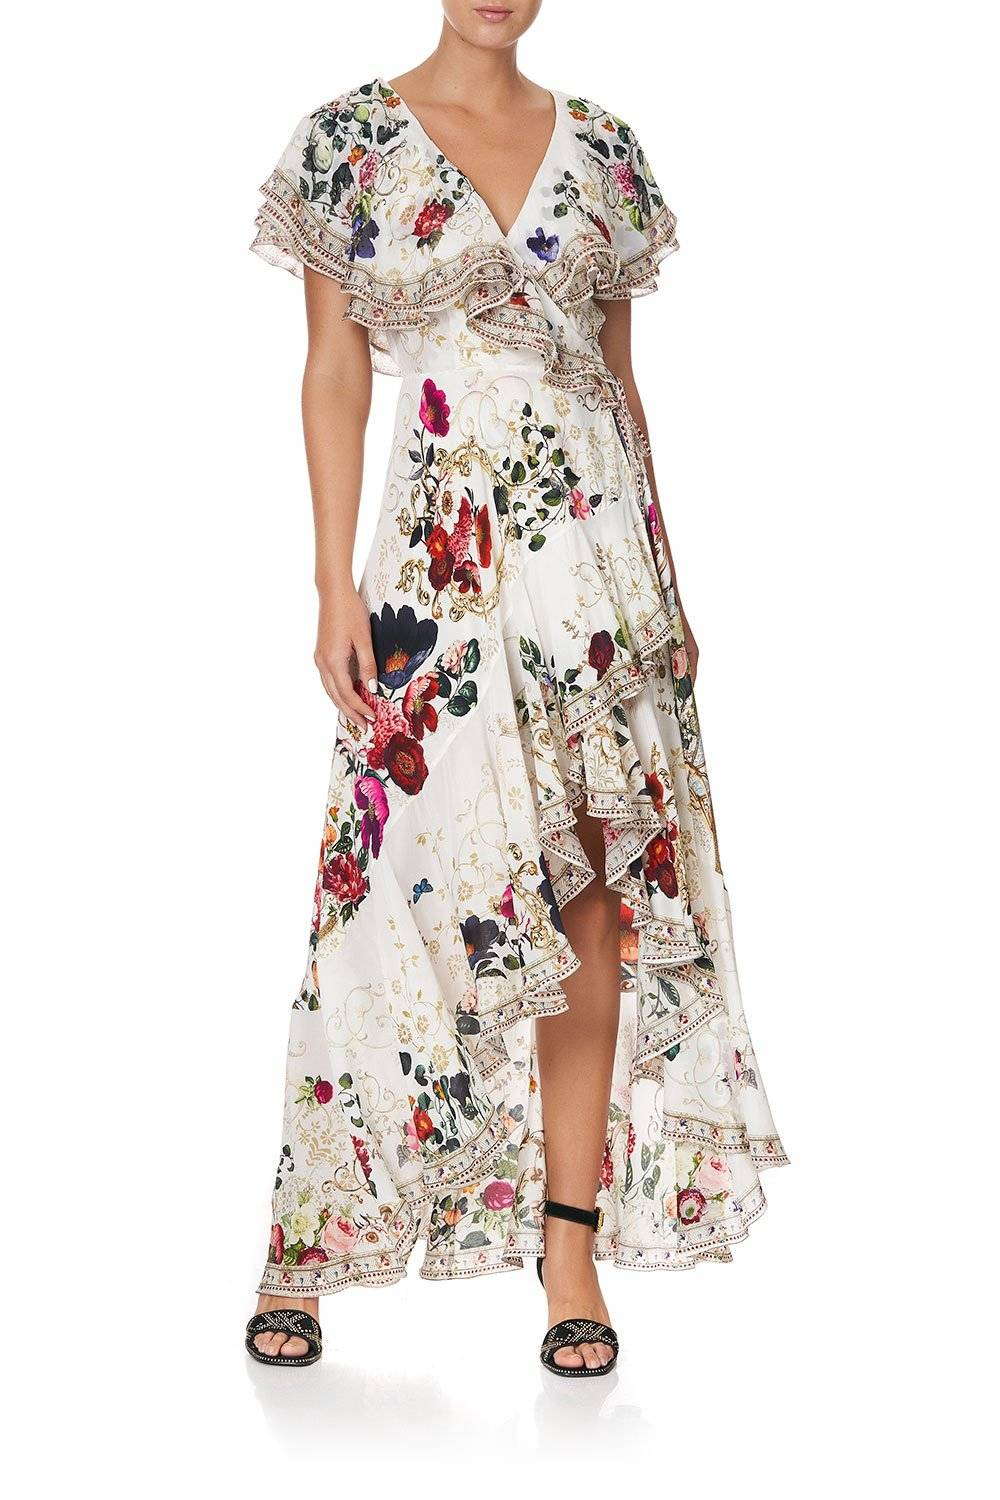 CAMILLA white midi wrap dress with frill and floral print.